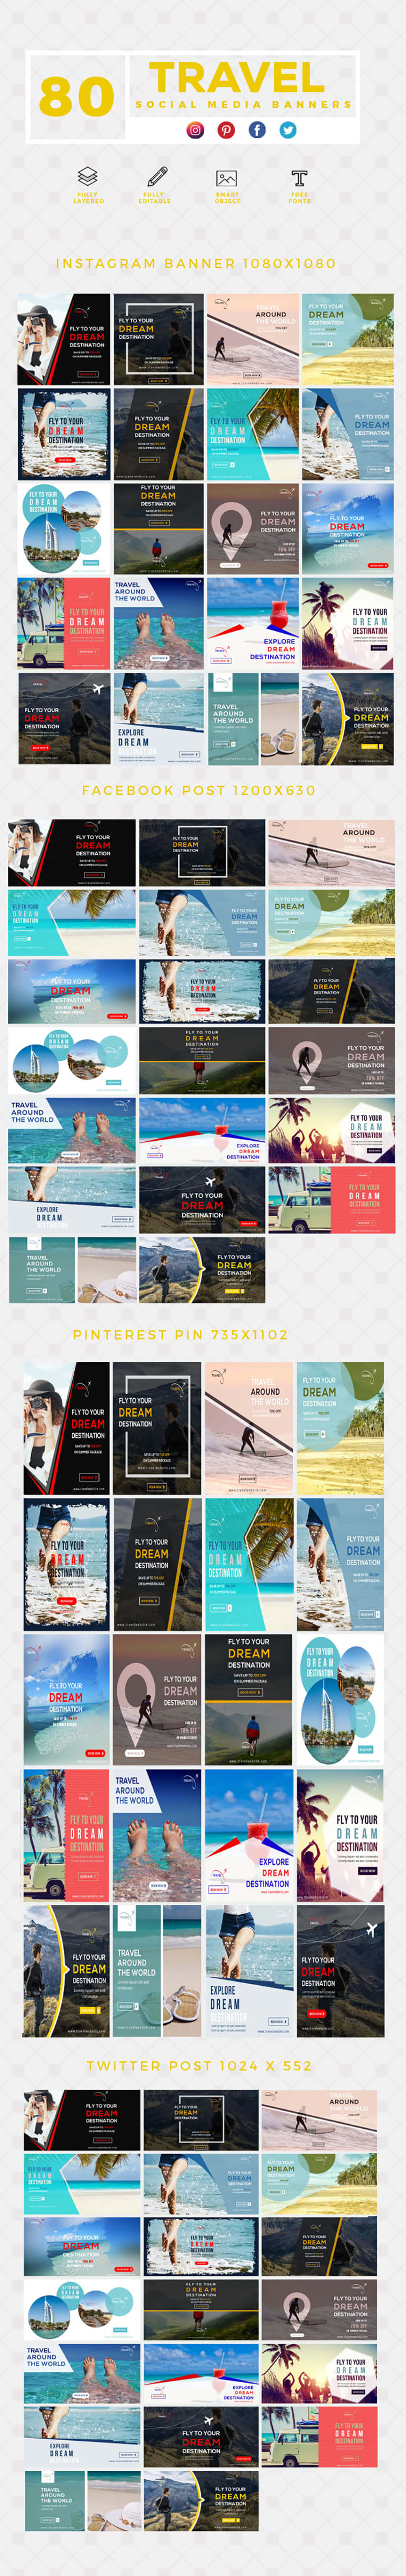 640 Social Media Banner Templates Bundle PREVIEW-TRAVEL